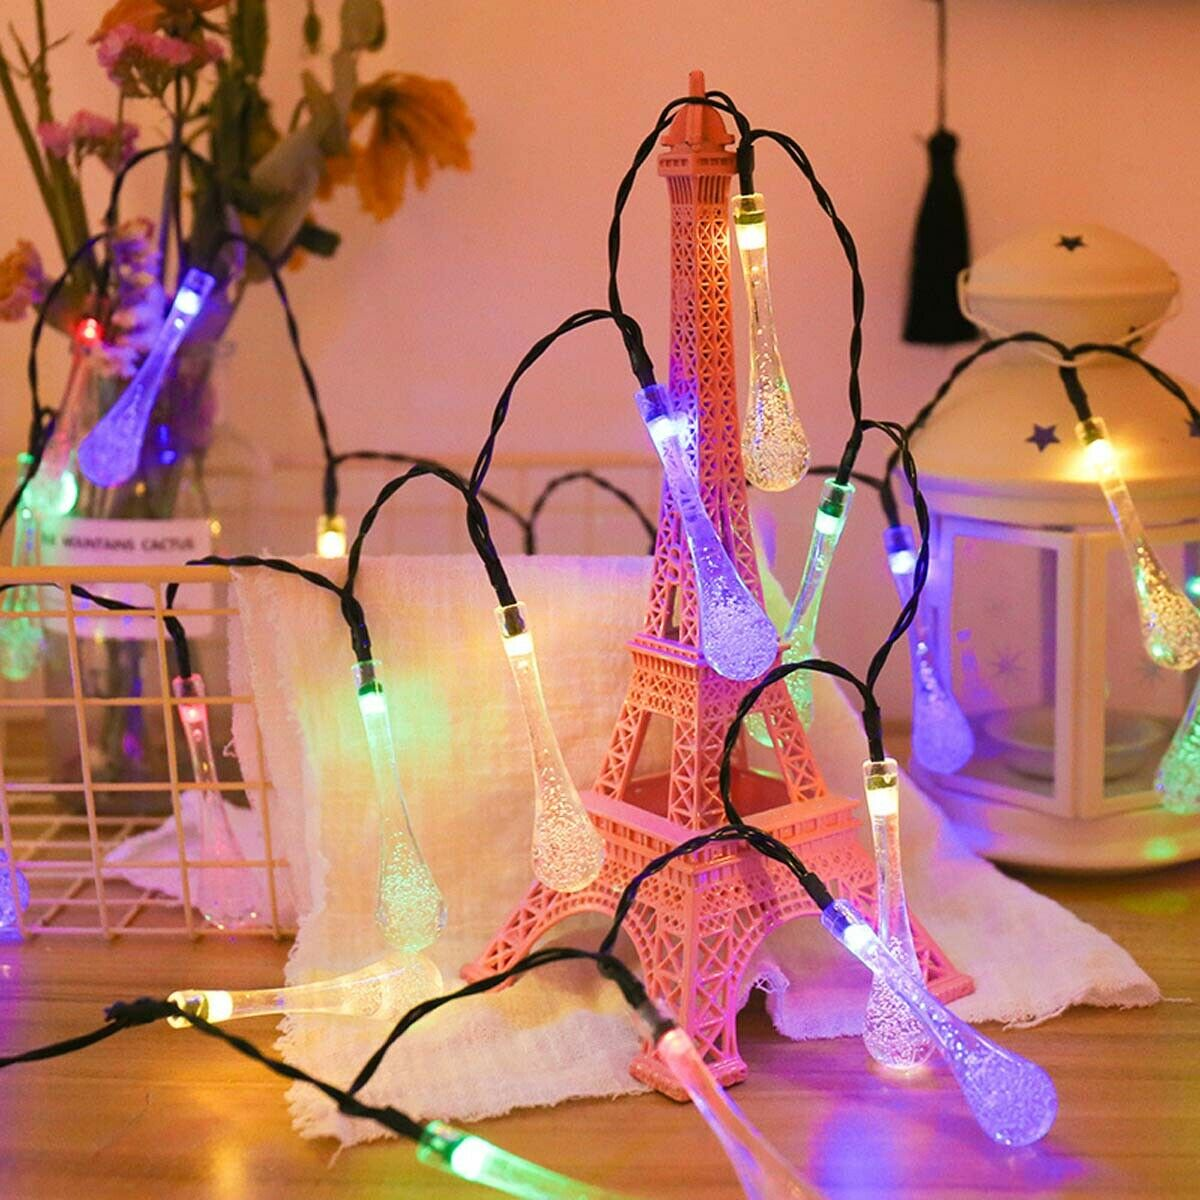 6.5M 30LED Solar Water Drop String Lights Wide Angle LED Raindrop Teardrop Outdoor Fairy String Lights for Tree,Garden,Home,Wedding,Party,Patio,Holiday Decor (Multicolor/Warm White/White)